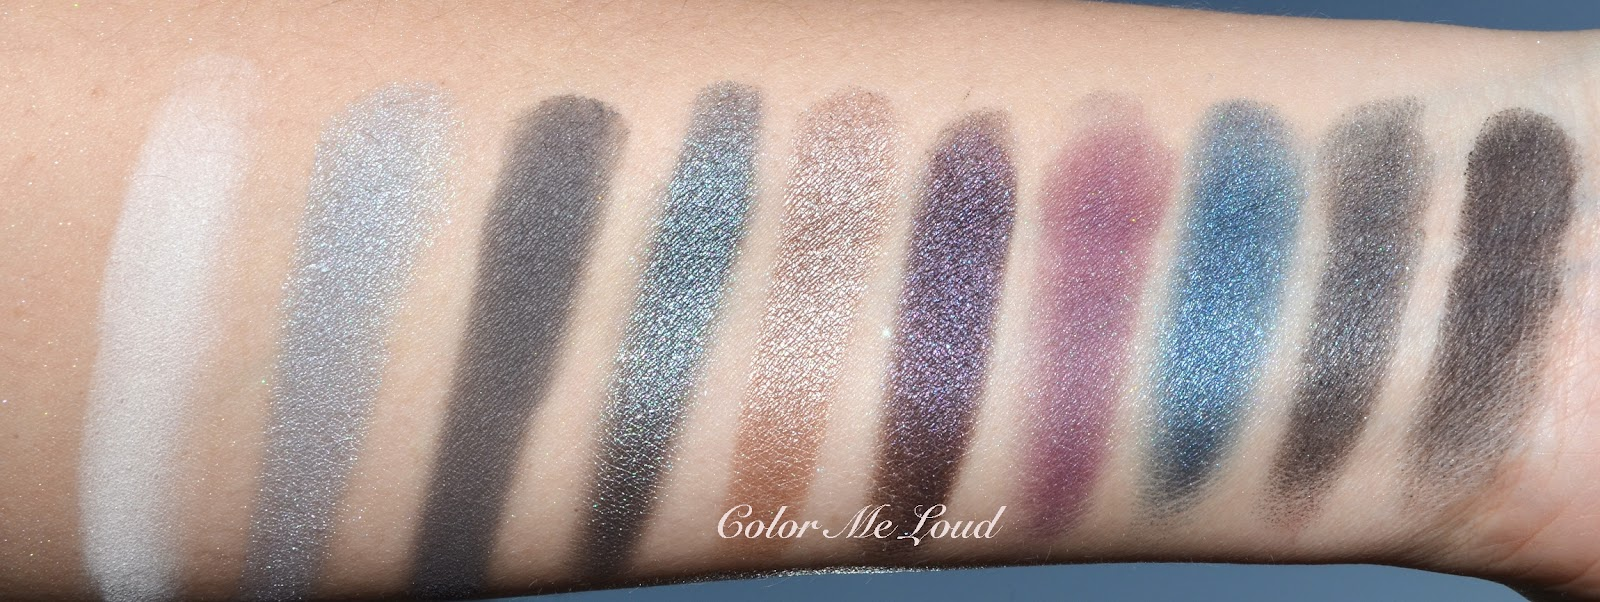 Ysl couture variation 10 color eye palette 2 tuxedo review swatch ysl couture variation 10 color eye palette 2 tuxedo ccuart Gallery